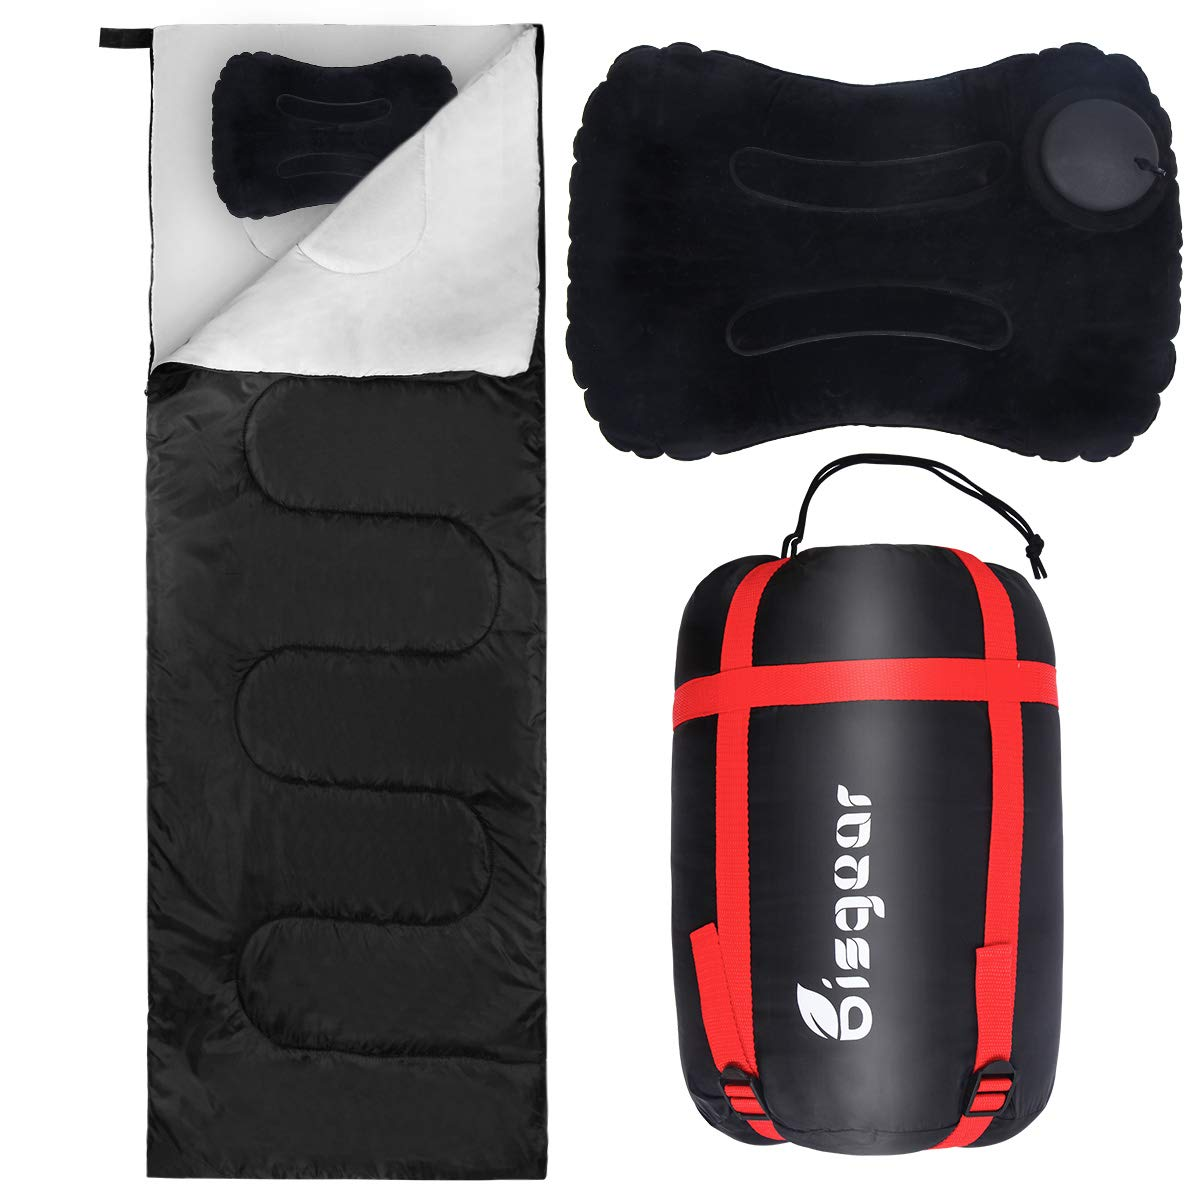 Bisgear Lightweight Sleeping Bag+ Inflatable Pillows for Warm Weather - Backpacking Camping Envelope Portable Comfort Water Resistantwith Compression Sack - Great for Kids, Adult